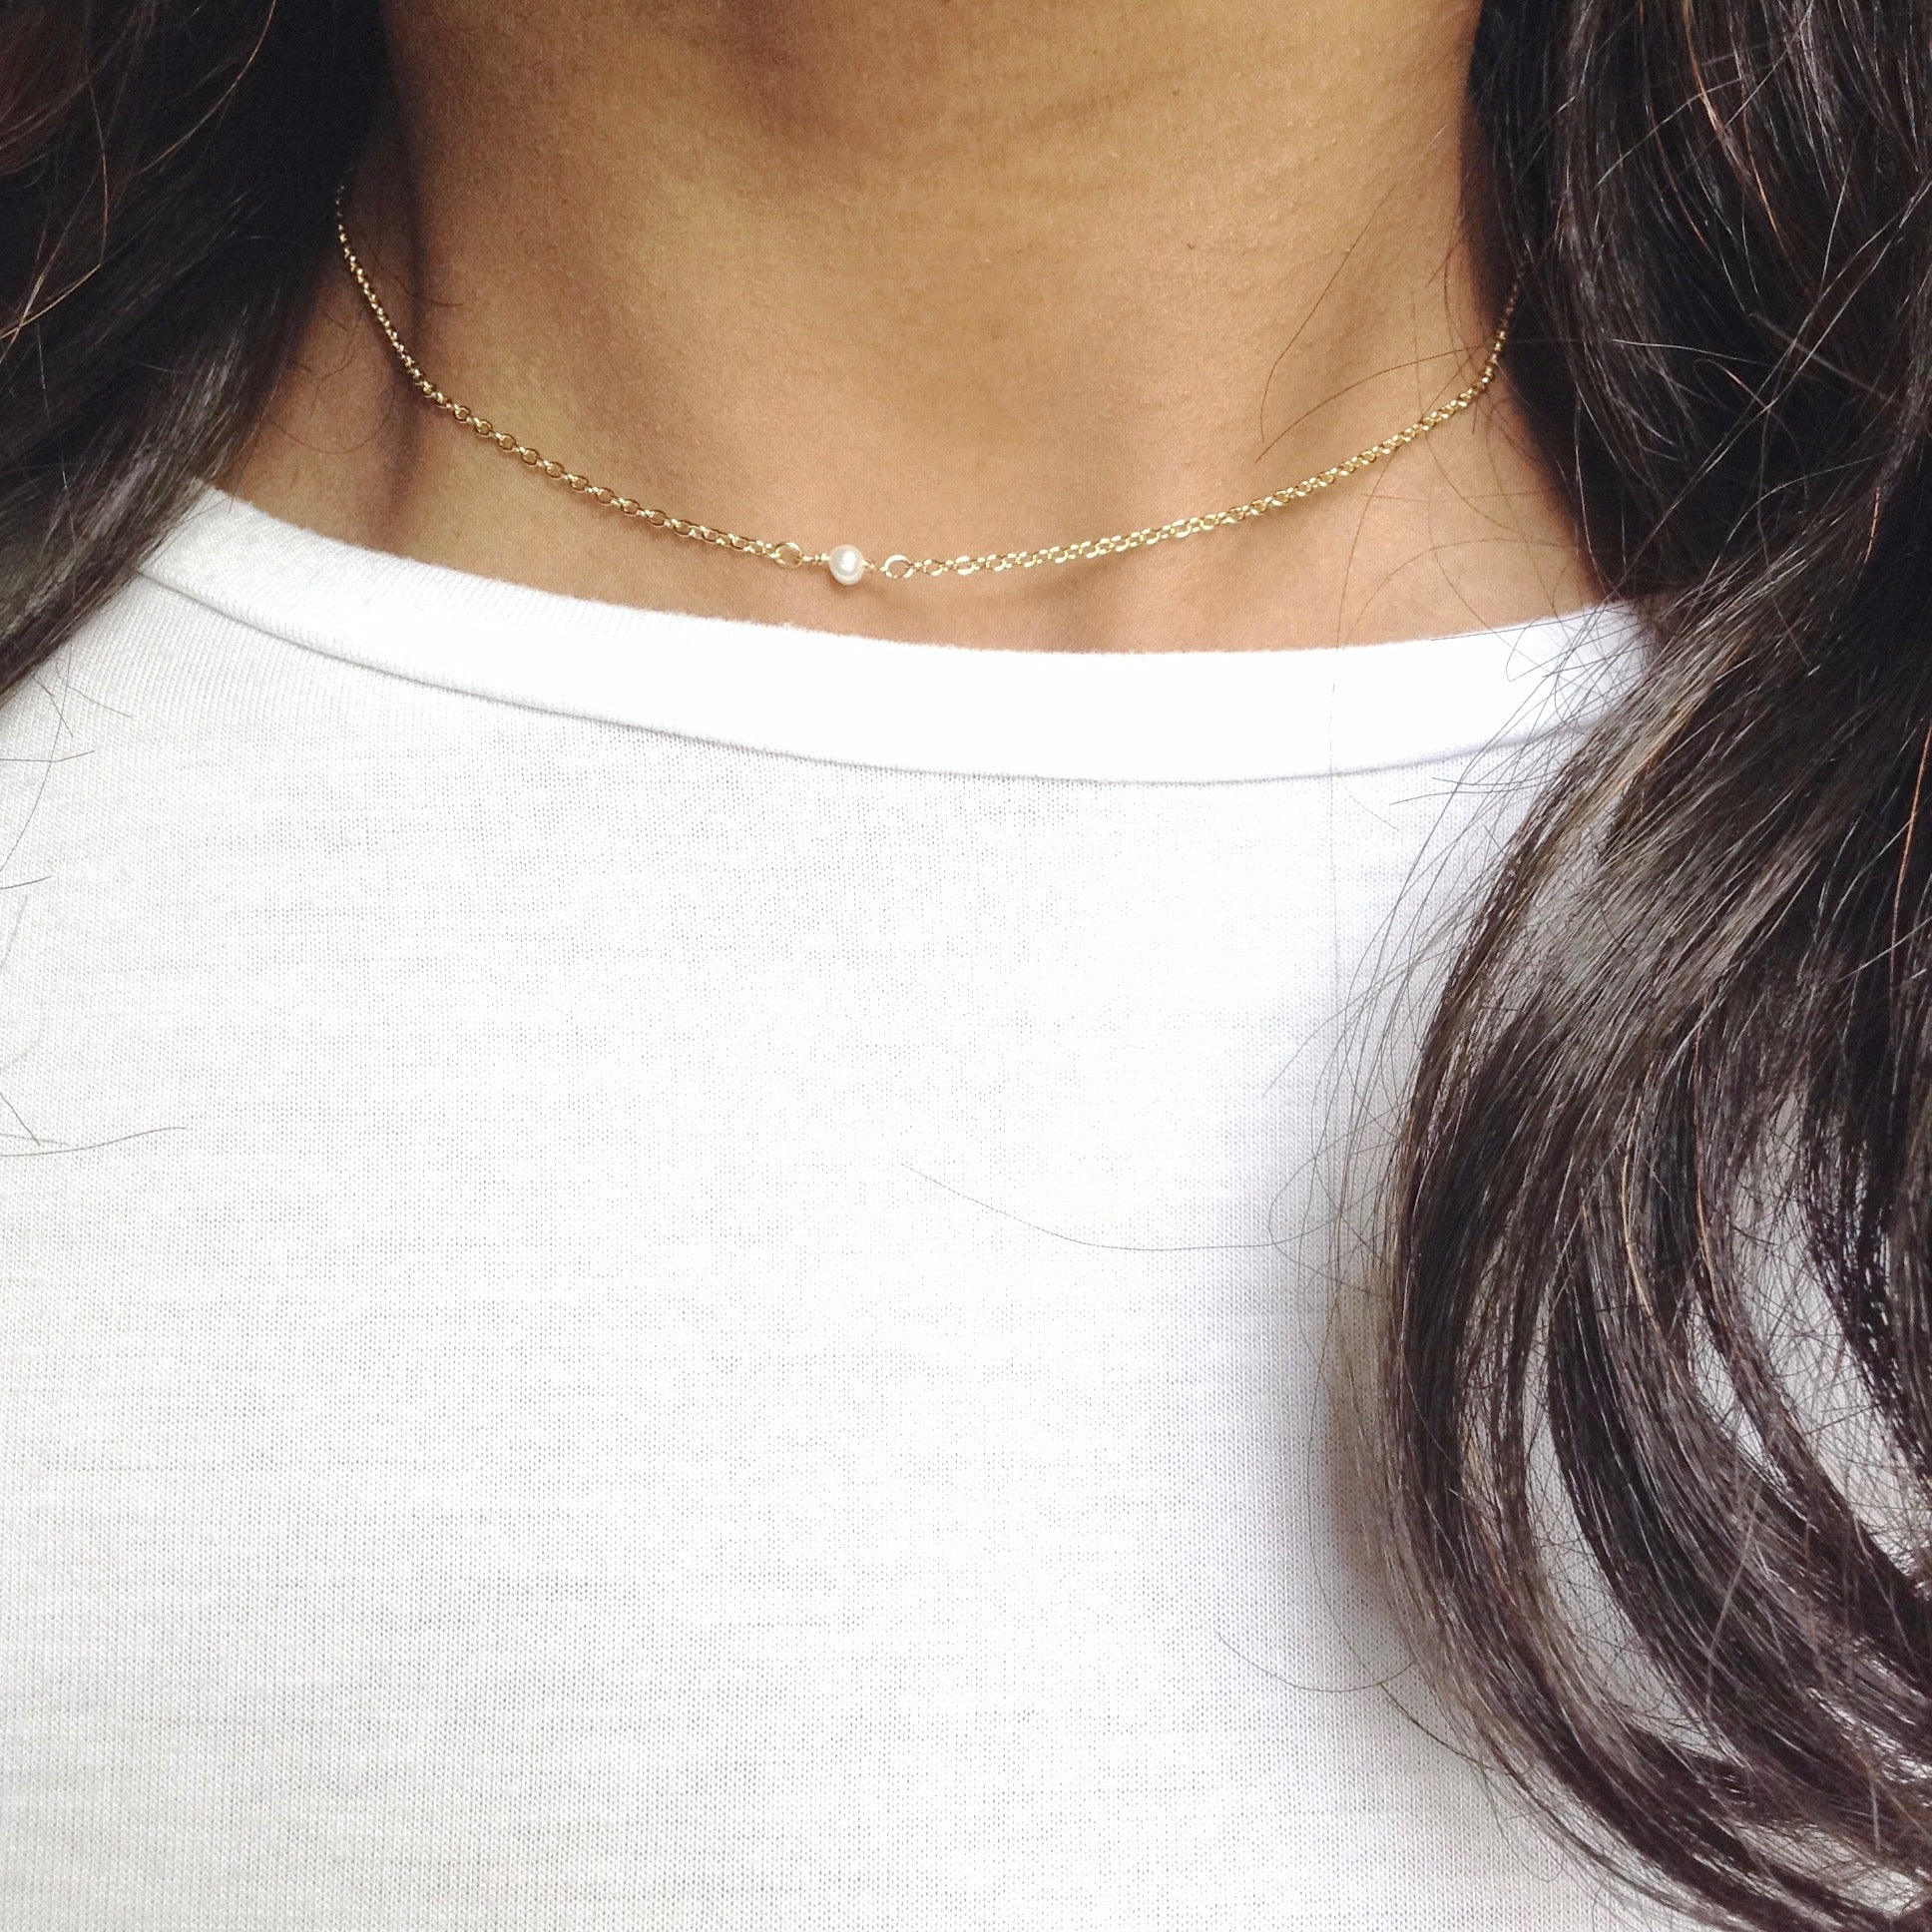 Tiny Minimalist Pearl Necklace | IB Jewelry